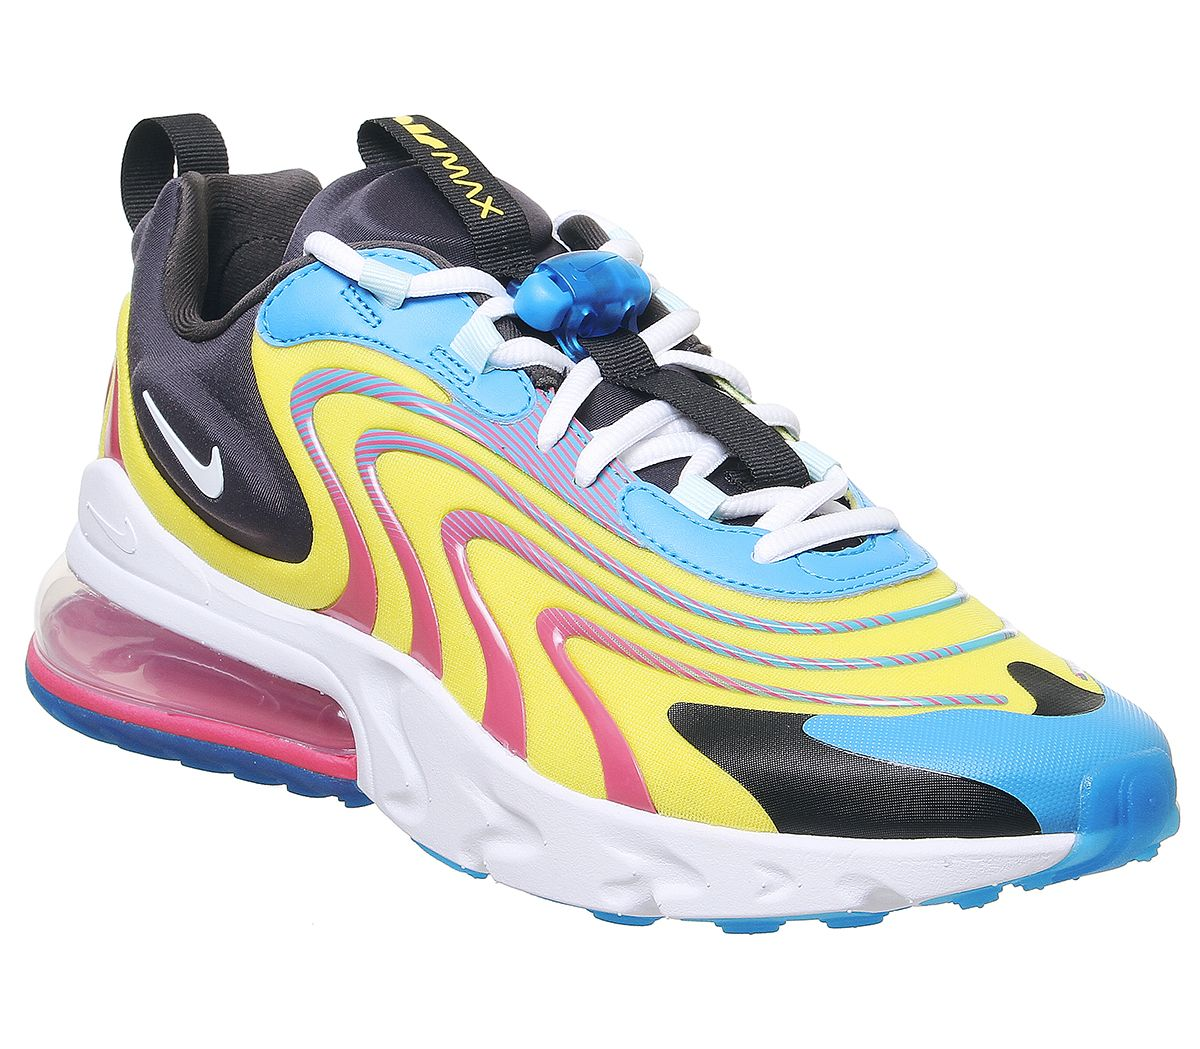 Nike Air Max 270 React Trainers Unisex Trainers Laser Blue White Anthracite Watermelon Opti Yellow 3764535159